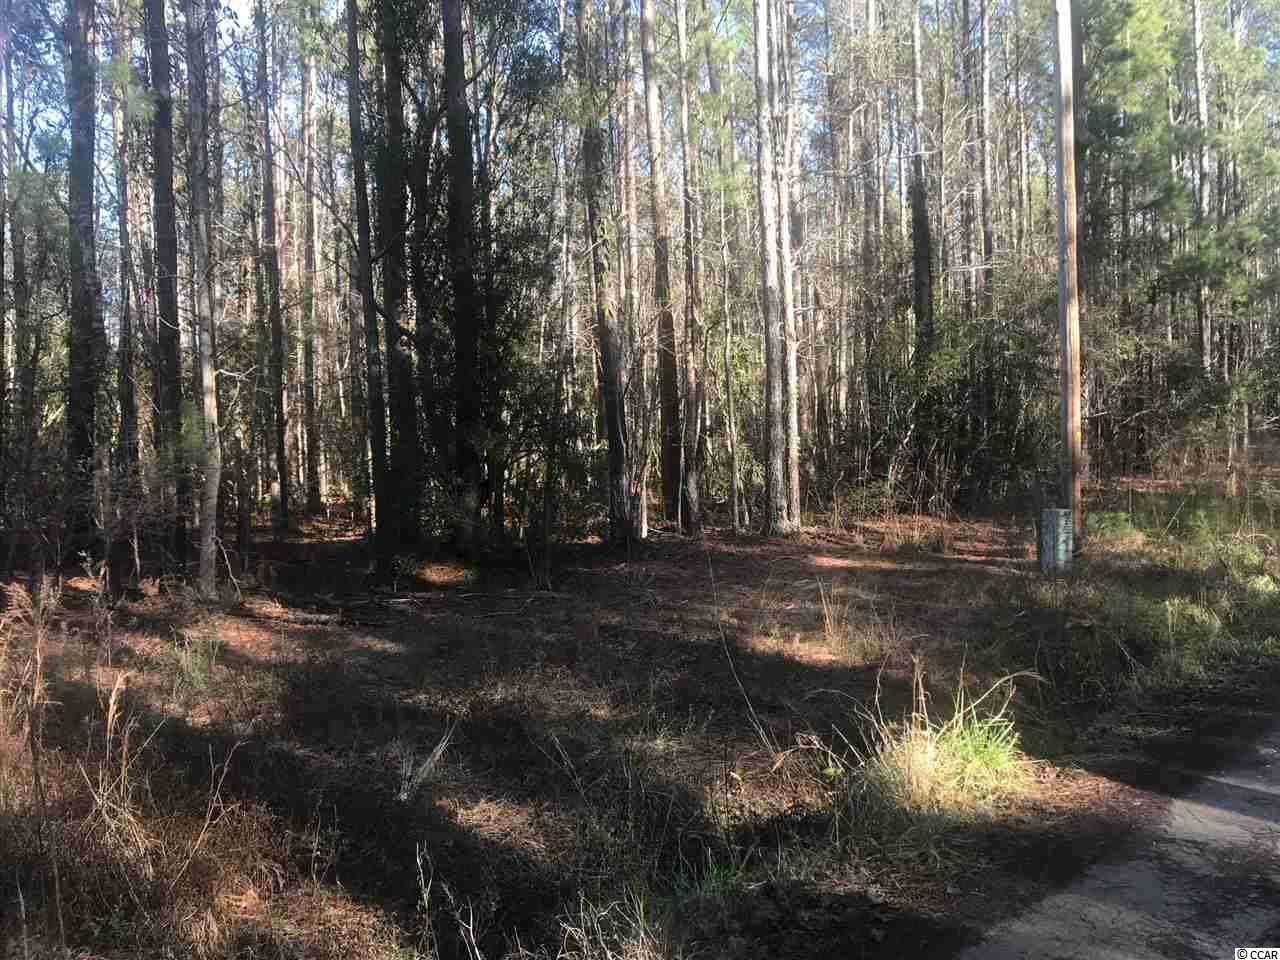 Room to Roam after purchasing this 13 acre tract of wooded land. This affordable acreage is located just off of Highway 57 in Little River.  Plenty of room to build your dream estate with NO HOA fees!  Multiple uses for this property, which is on both sides of Finnell Rd. Cut the timber and make some cash and start building! Only 10 minutes to the beach! Hurry because this deal won't last long!